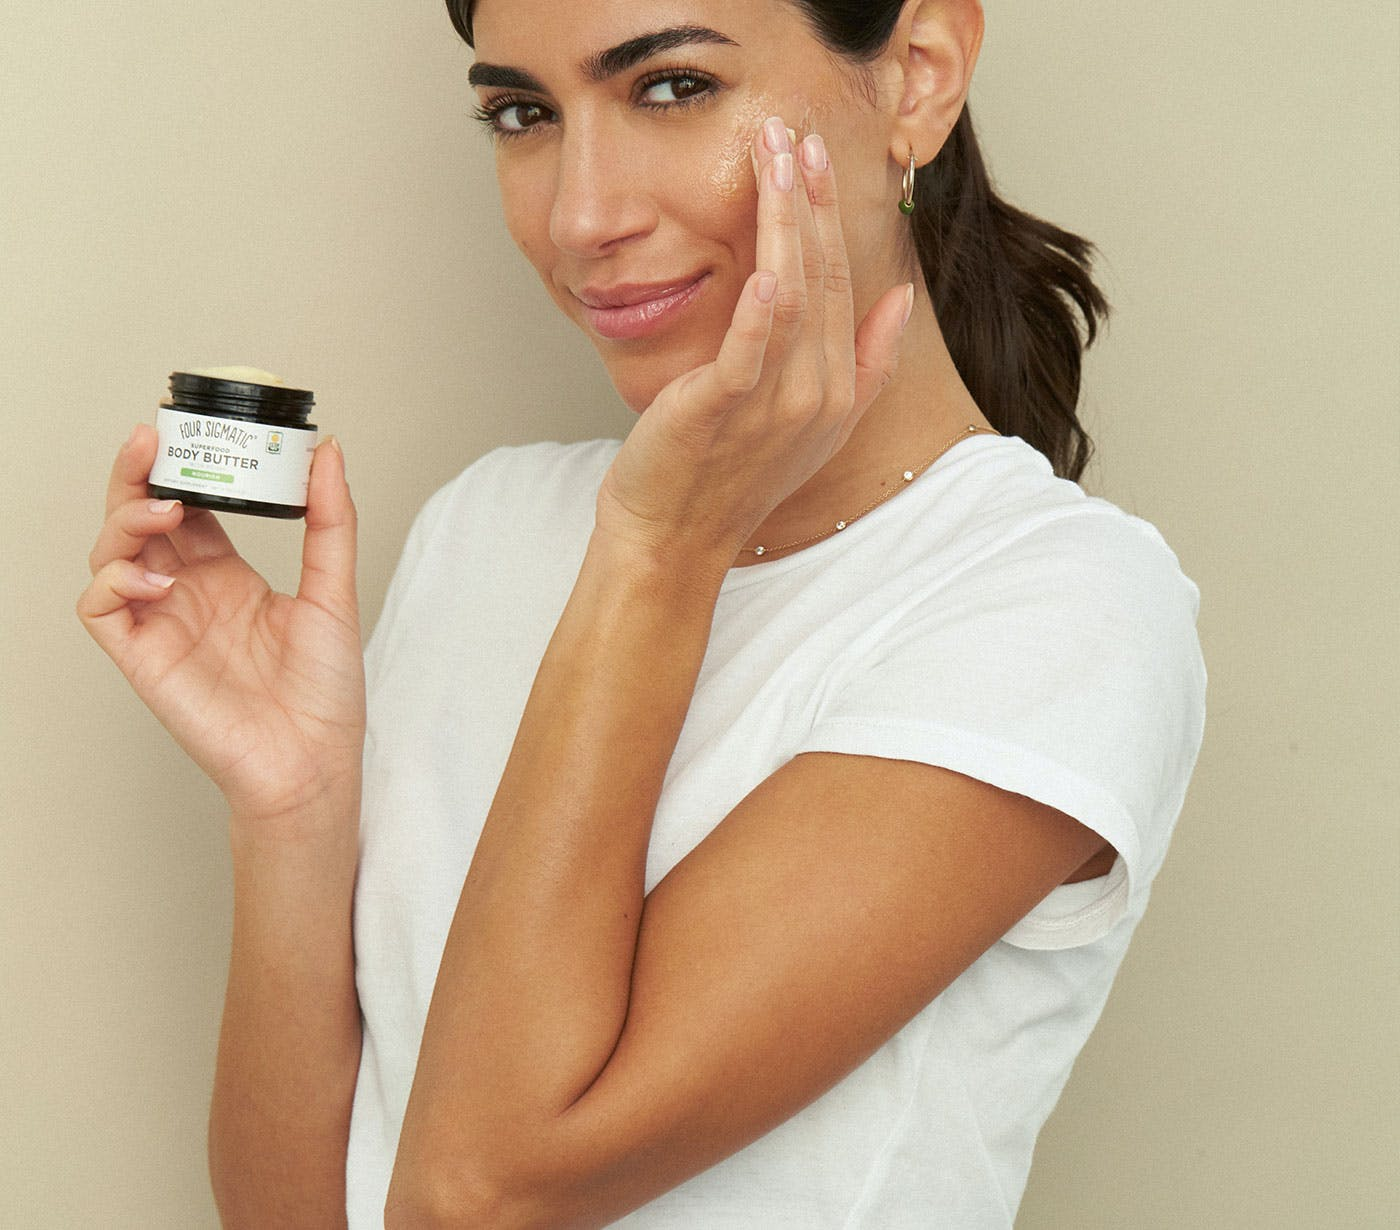 Body Butter being used